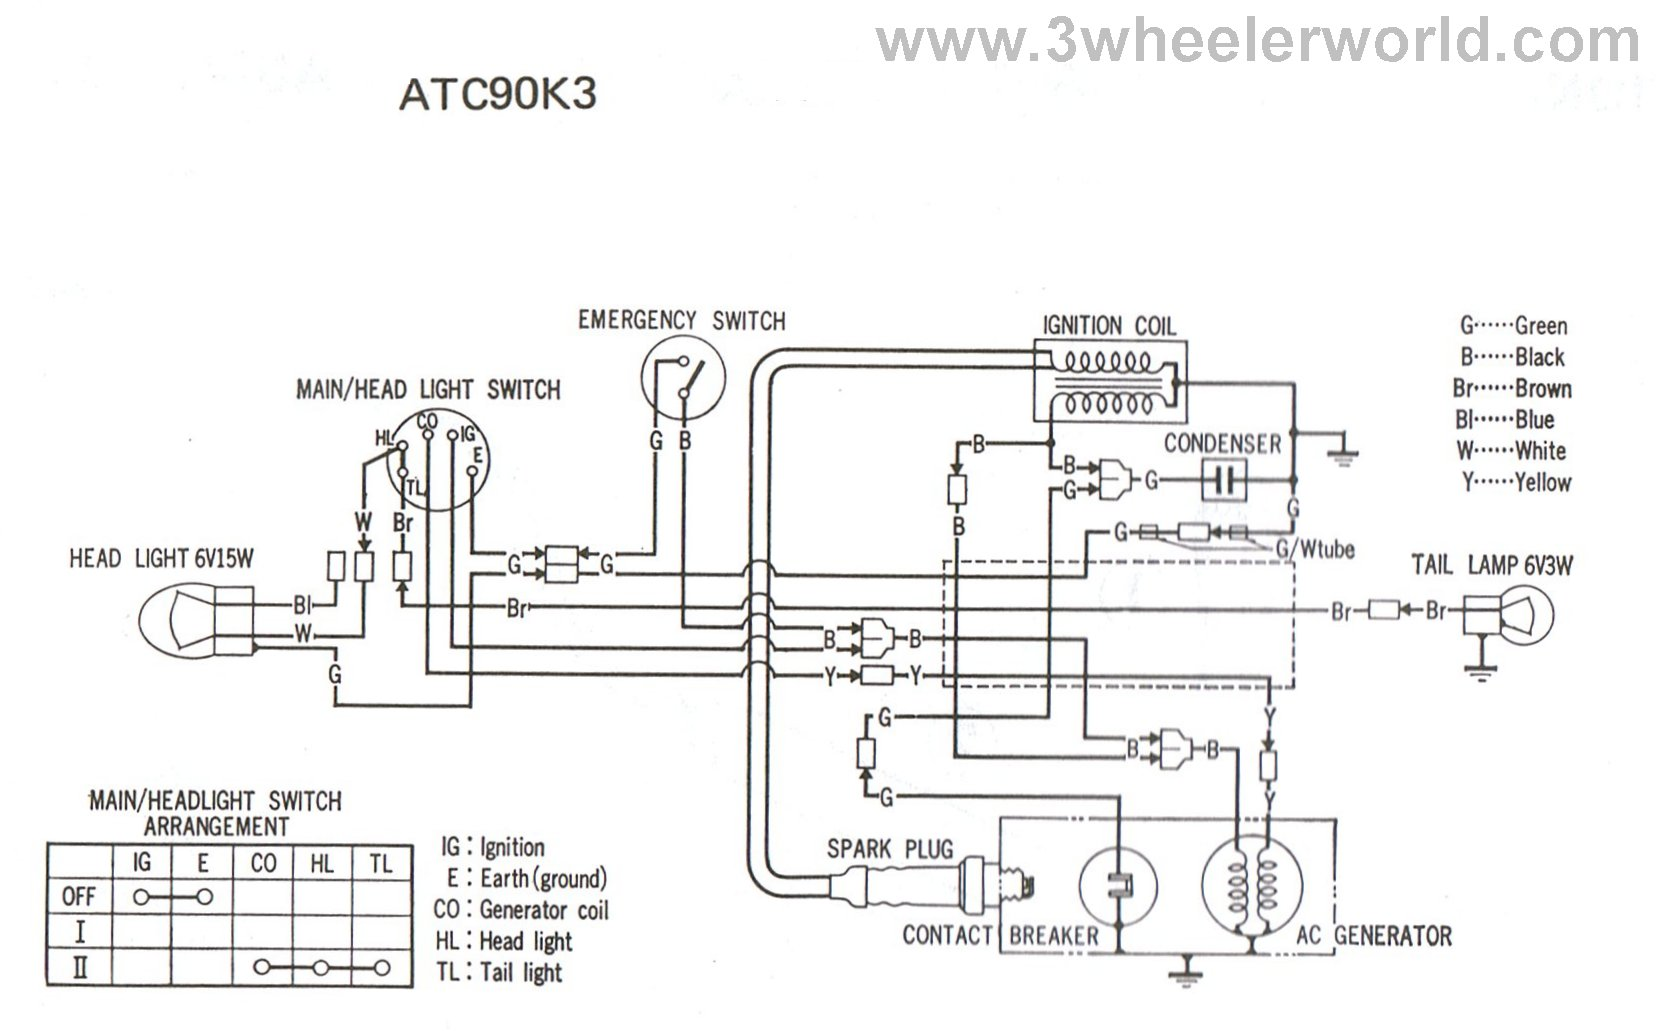 ATC90K3HM polaris predator 90 wiring diagram polaris 90 service manual polaris trail boss 250 wiring diagram 1991 at virtualis.co